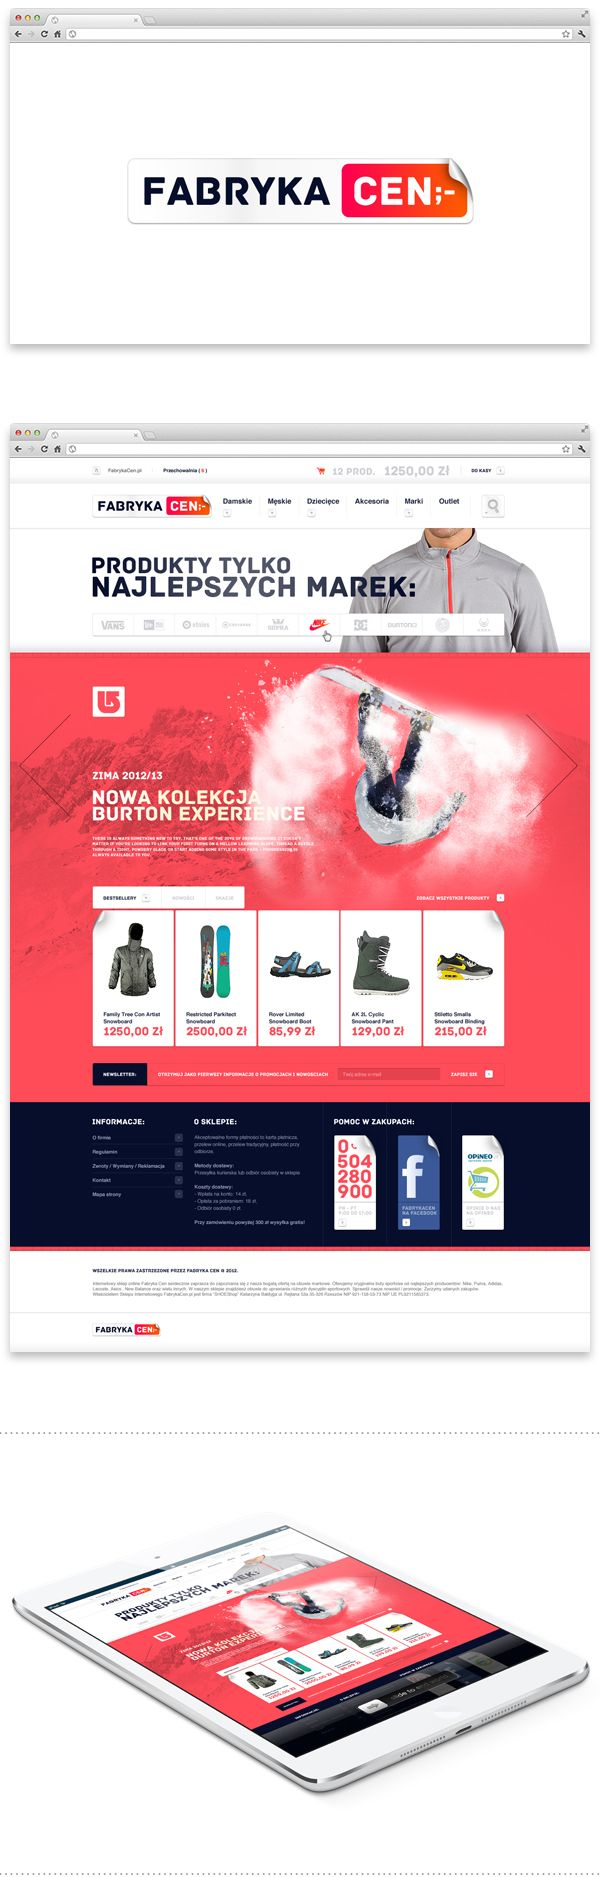 Price Factory by CHALLENGE, via Behance